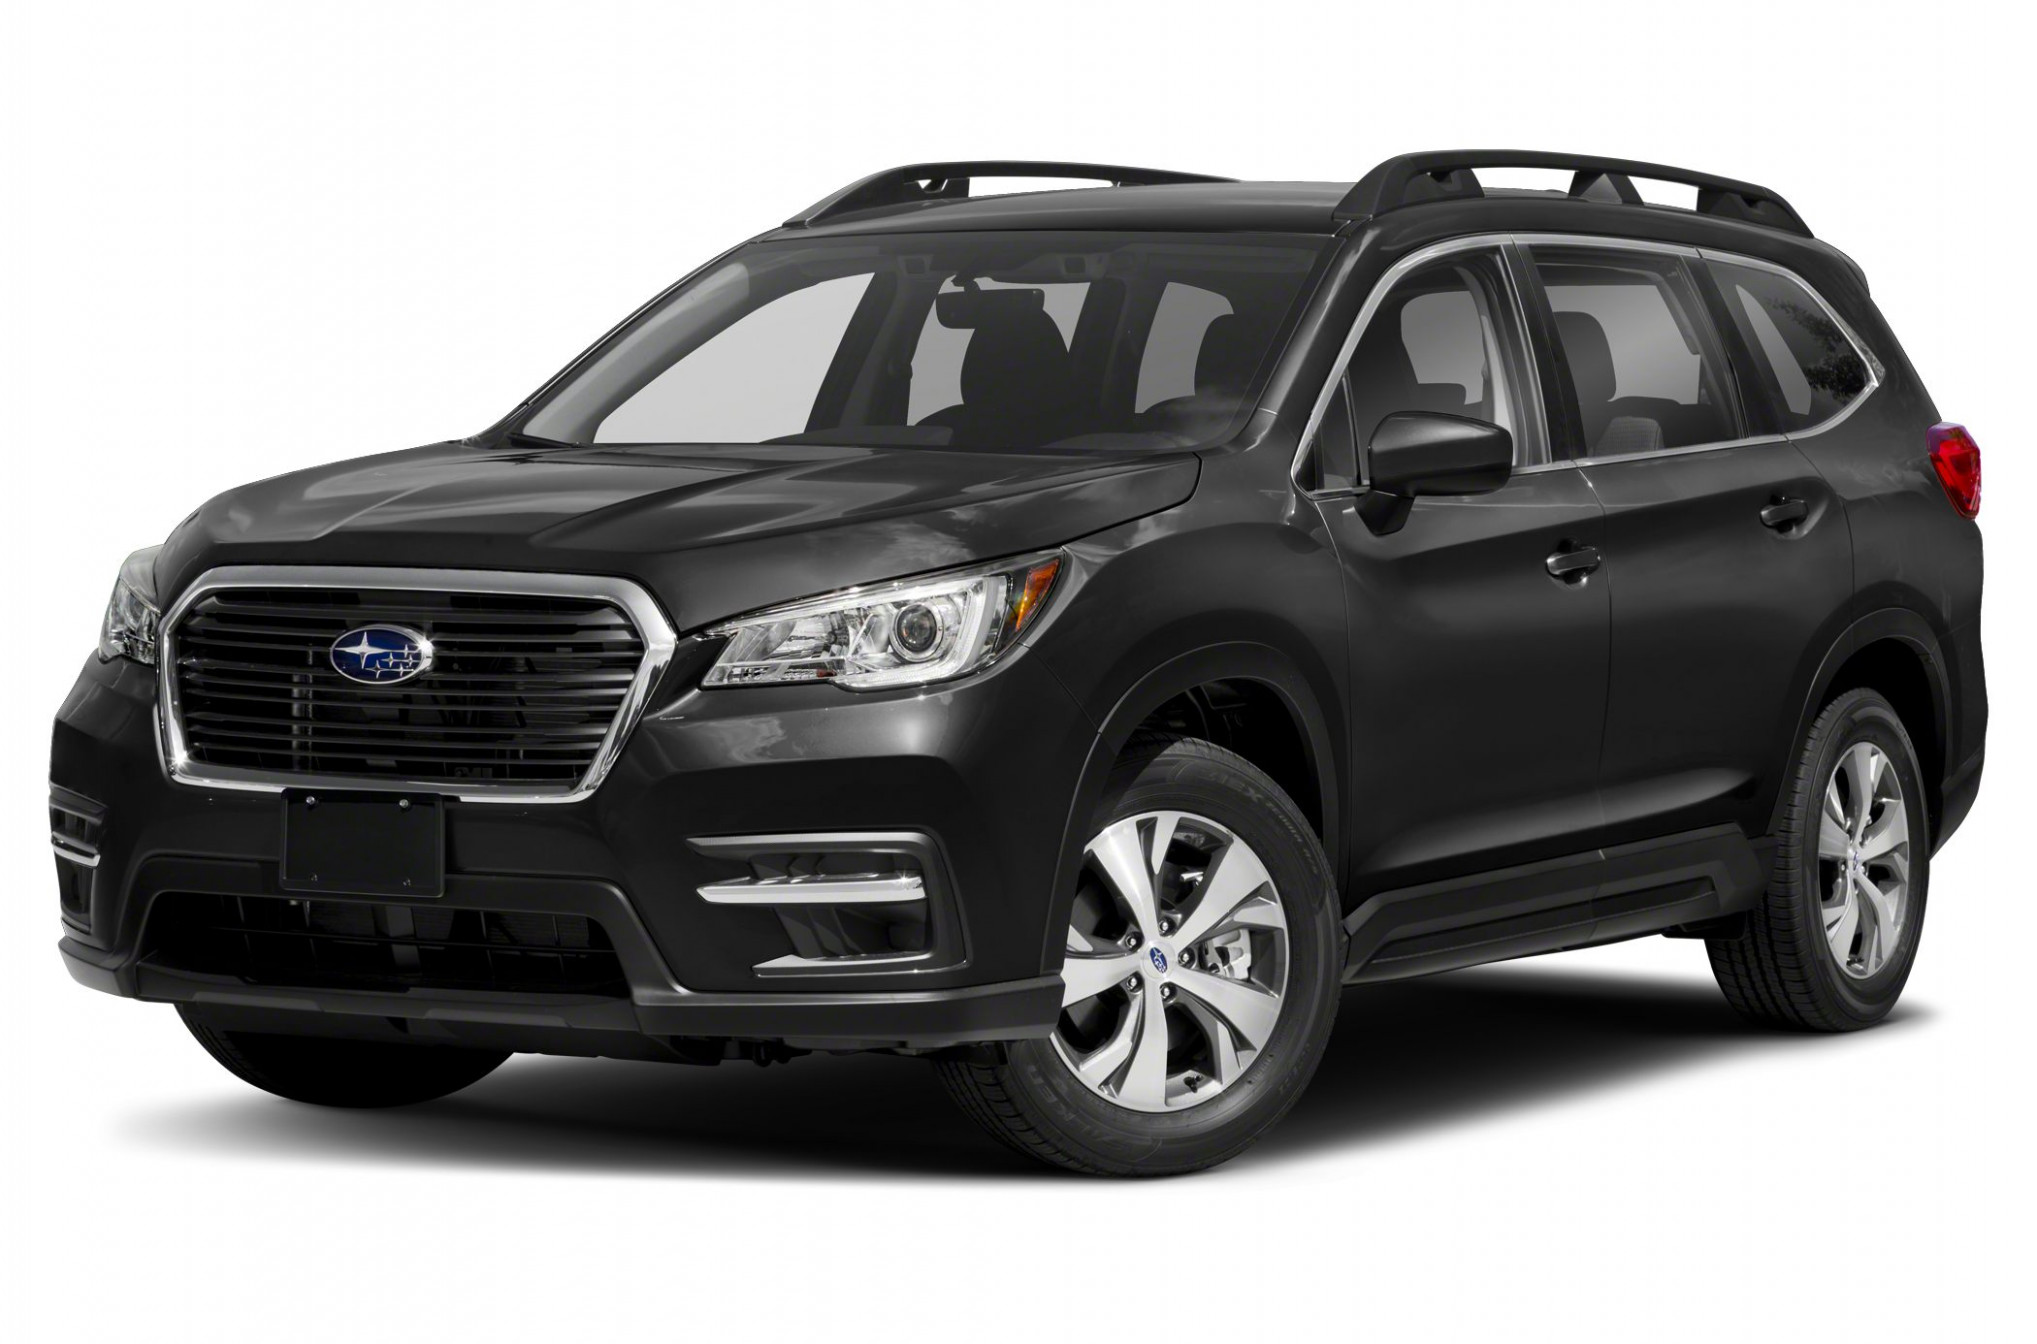 7 Subaru Ascent Reviews, Specs, Photos - subaru ascent 2020 for sale